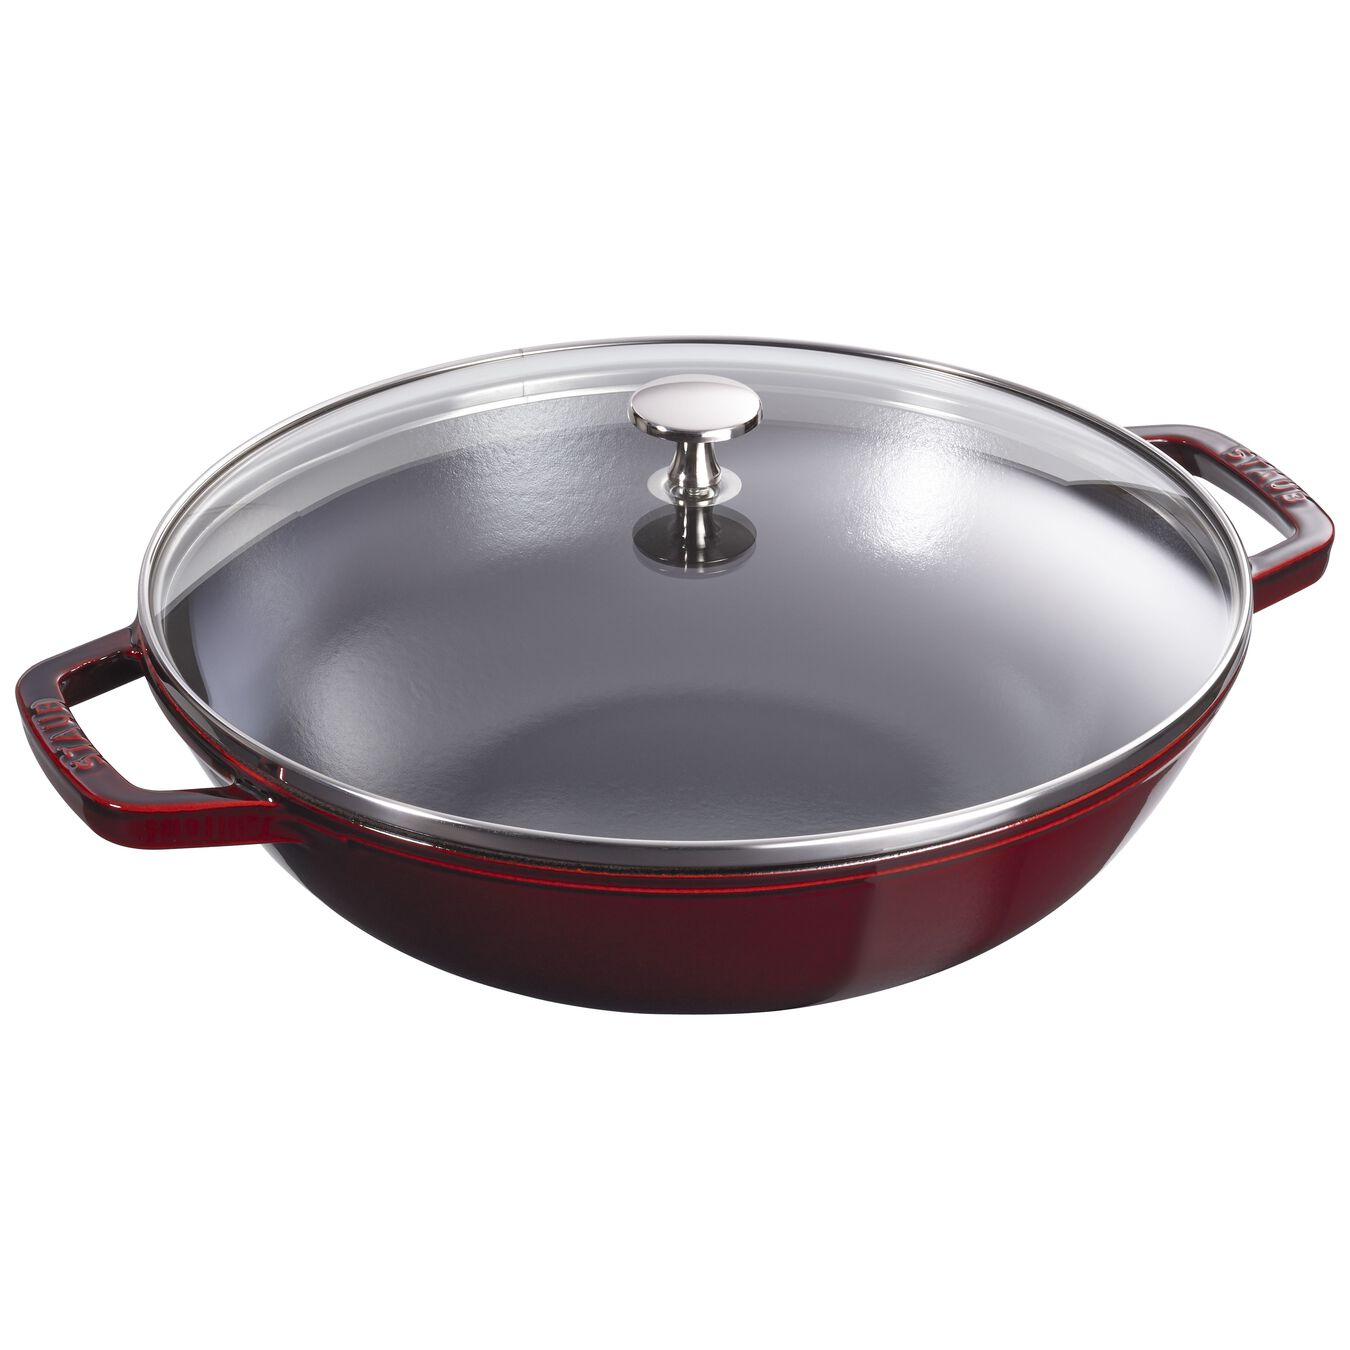 30 cm Cast iron Wok with glass lid, Grenadine-Red,,large 1